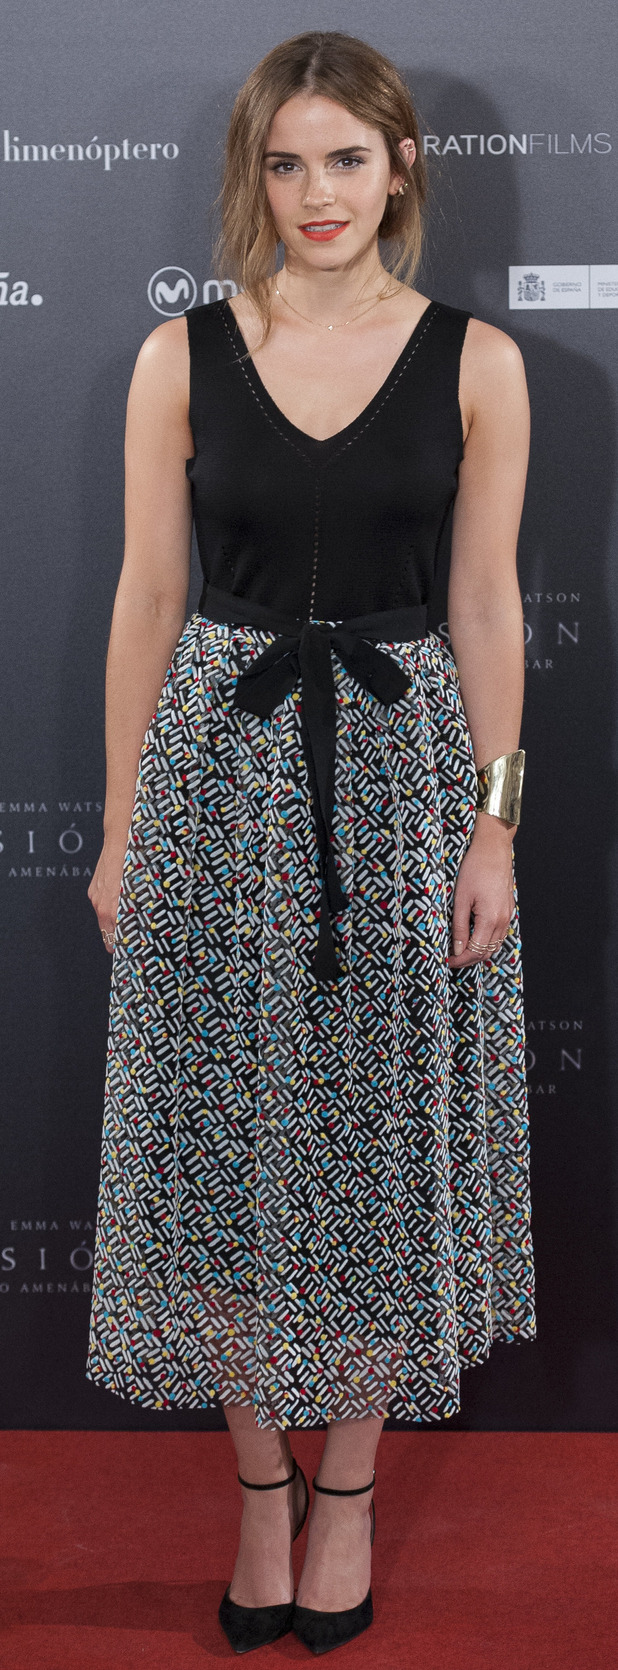 Emma Watson seen at the Regression Photocall 27th August 2015